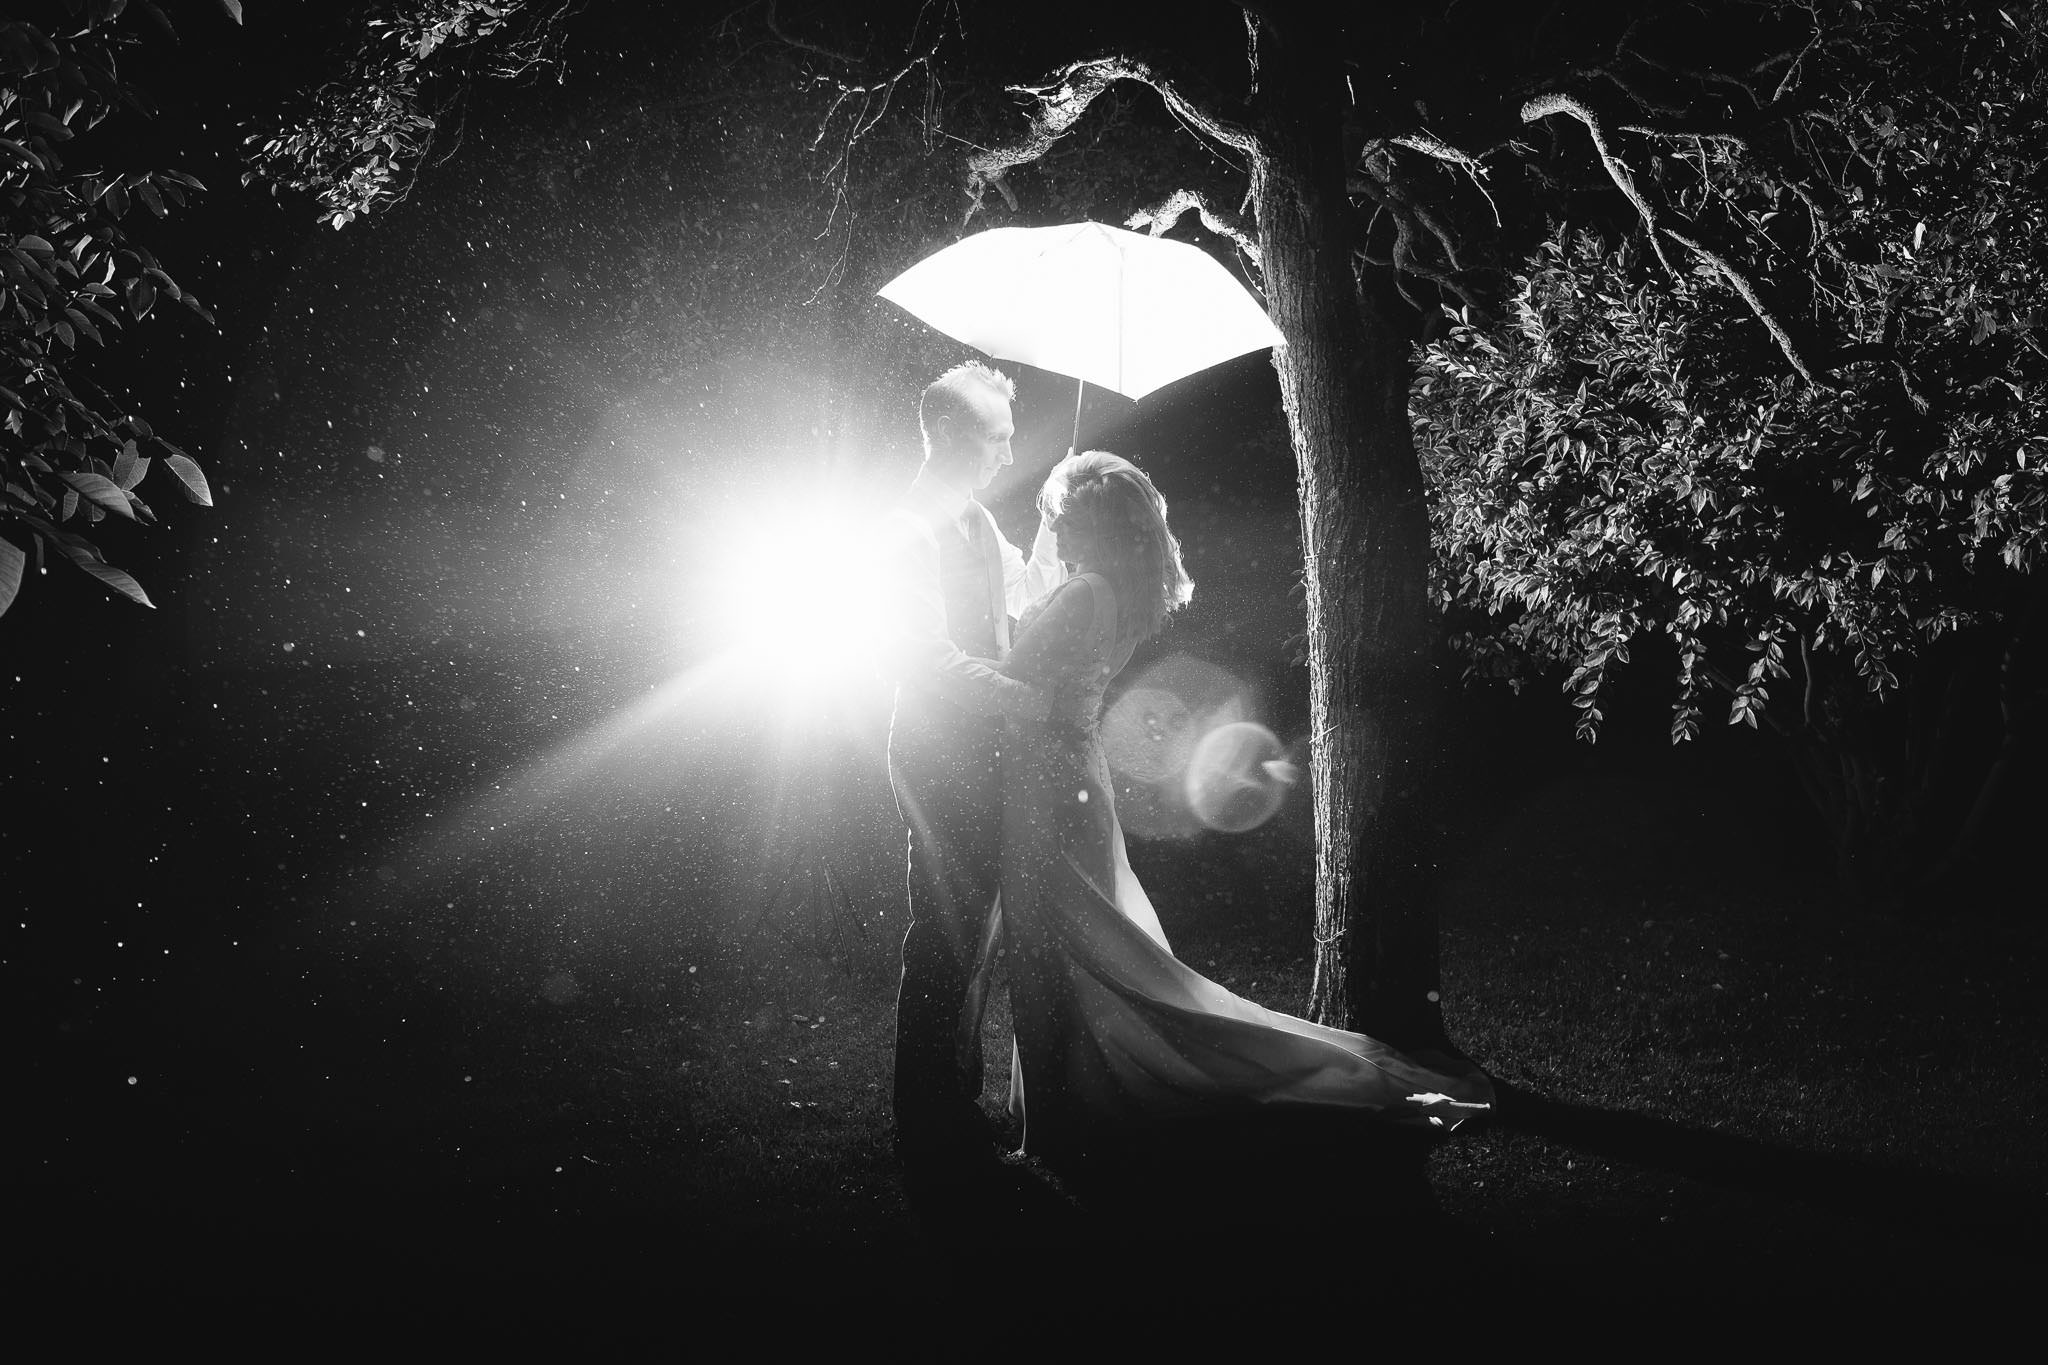 A black and white photo of the bride and groom under an umbrella in the rain with the flash bathing them in light